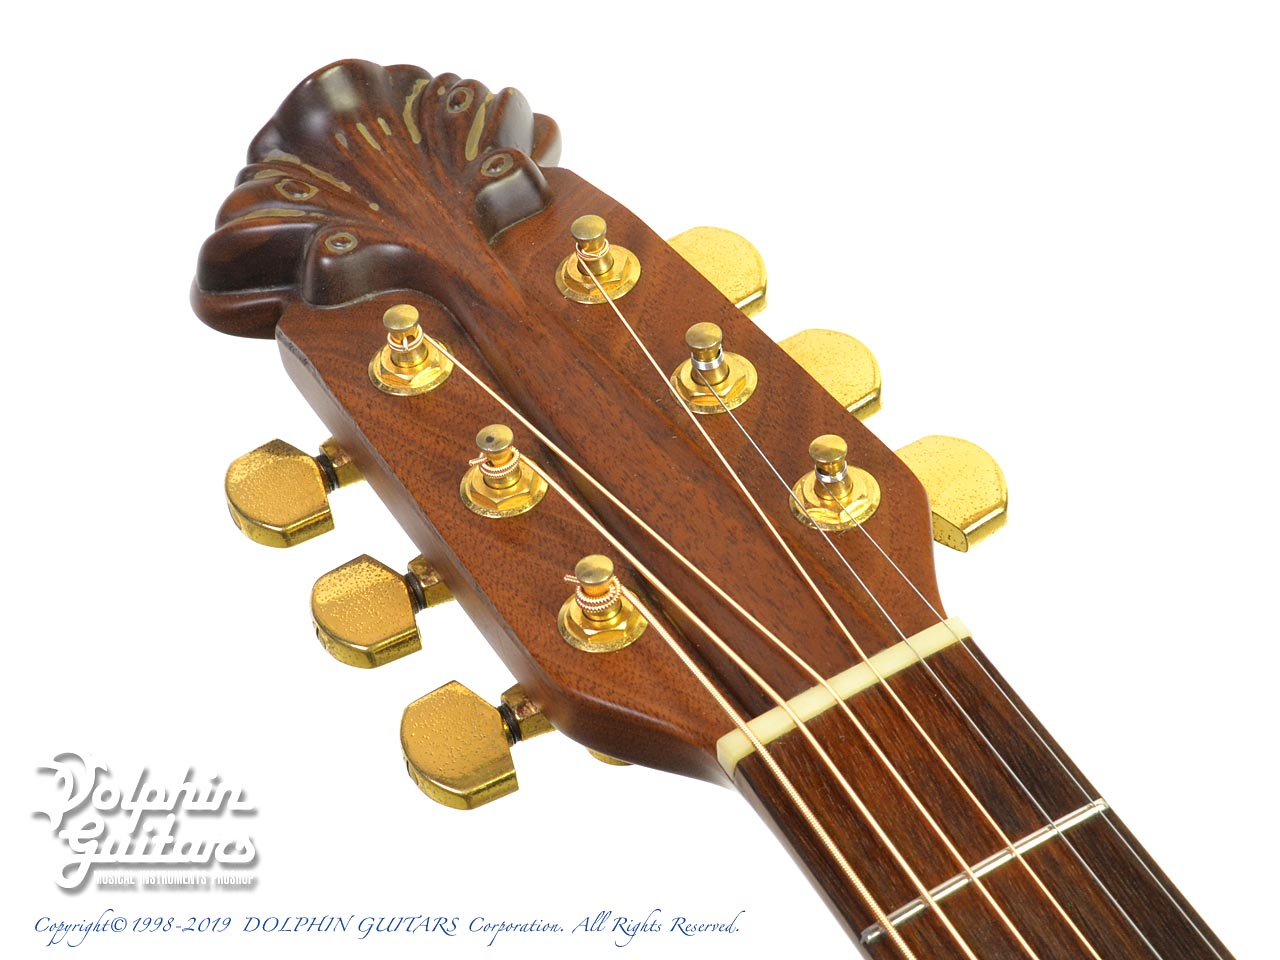 OVATION: Super Adamas 1587-2 (6)